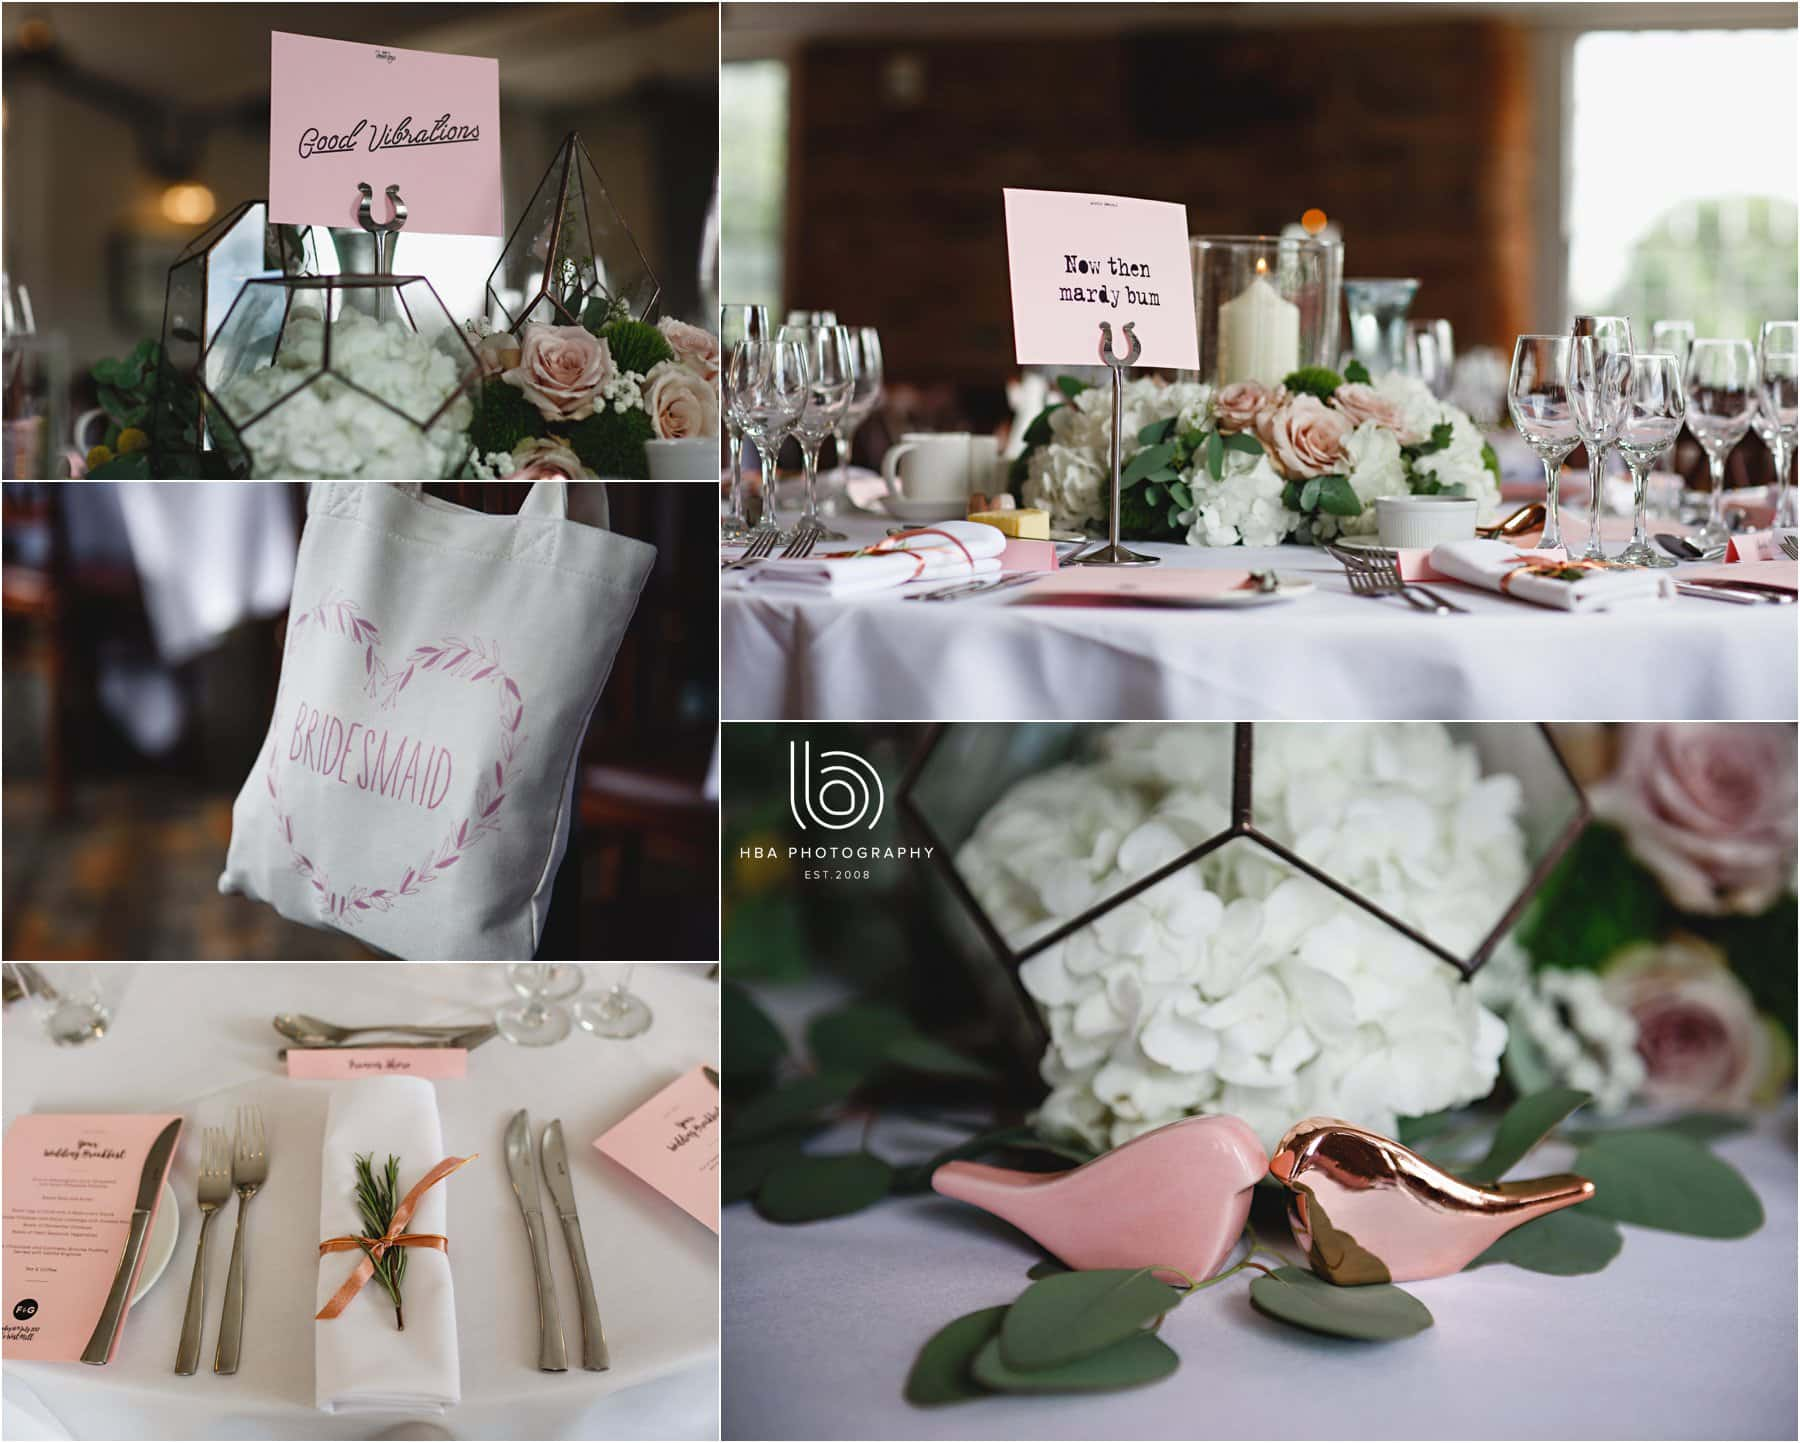 the detail in the wedding breakfast room